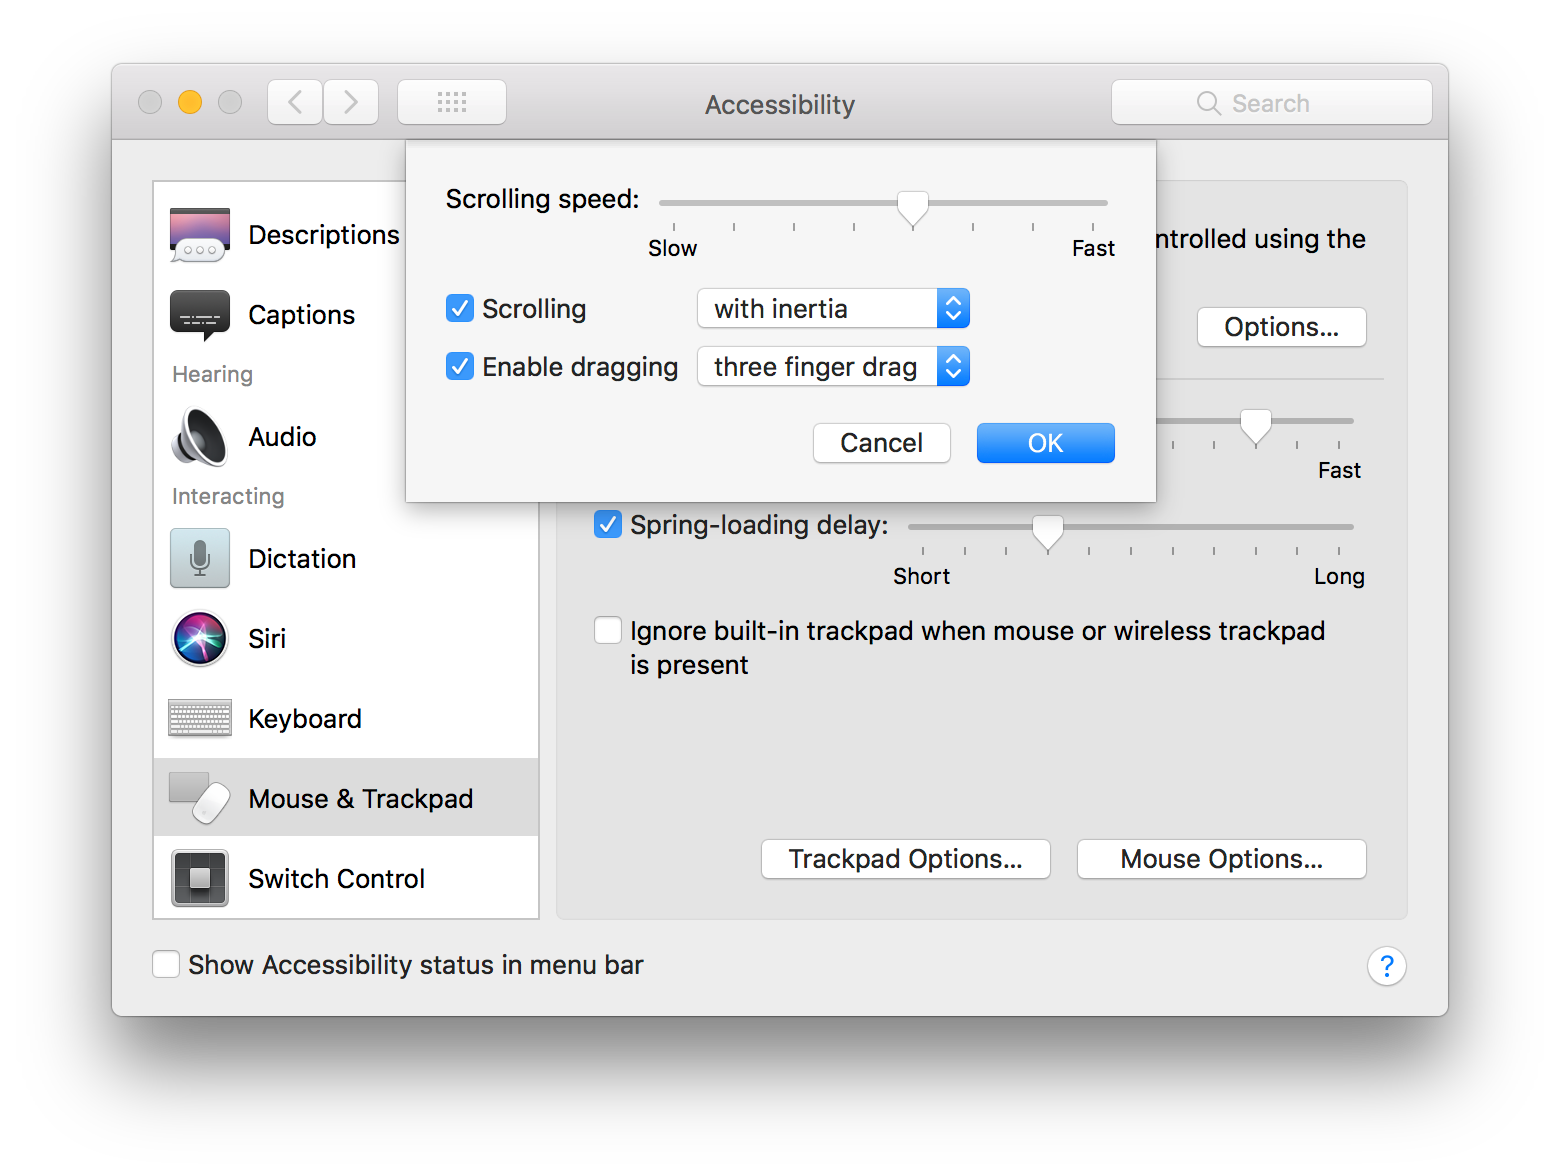 trackpad options in Accessibility